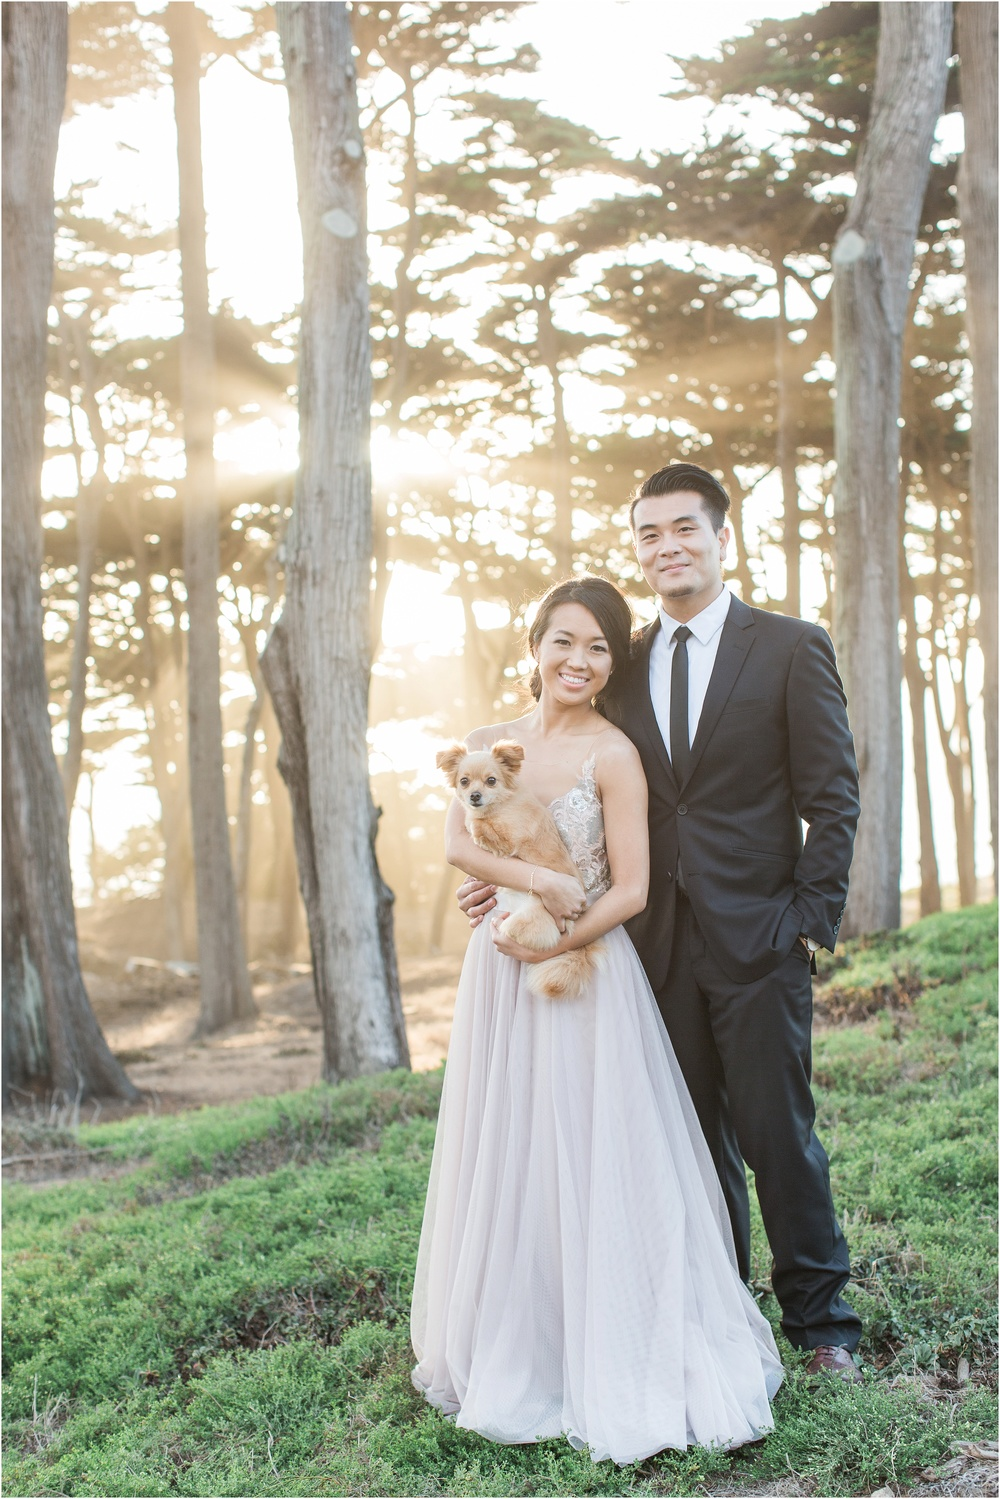 blueberryphotography.com | San Francisco Based Wedding & Lifestyle Photographer | Potrero Hill | San Francisco | Lands End